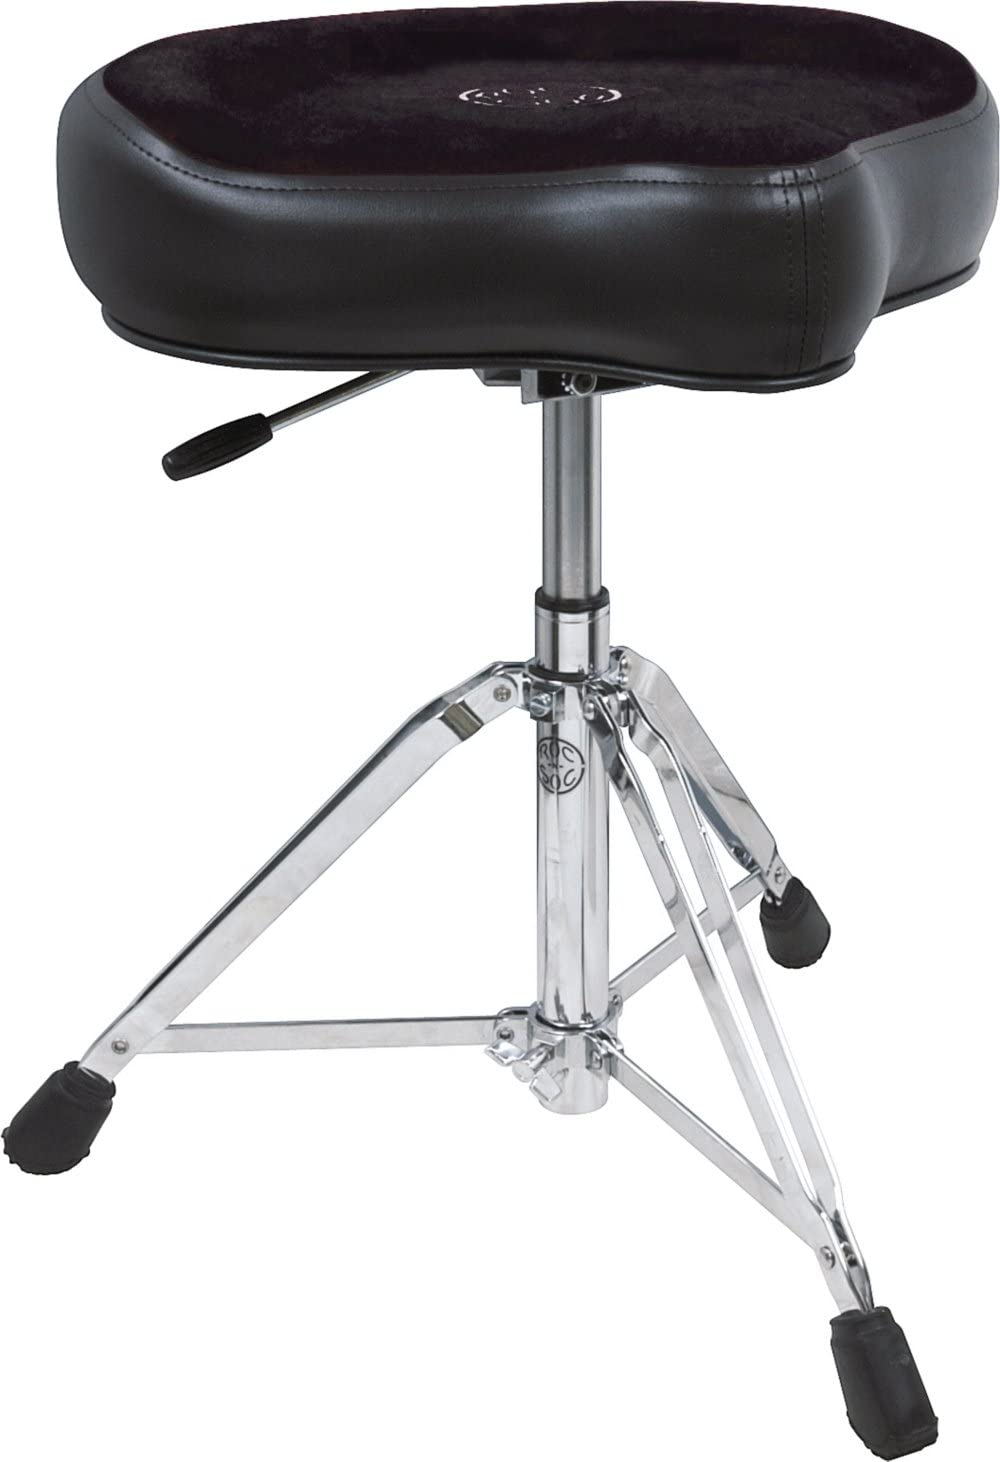 ROC-N-SOC Drum Throne – Best for Comfort and stability